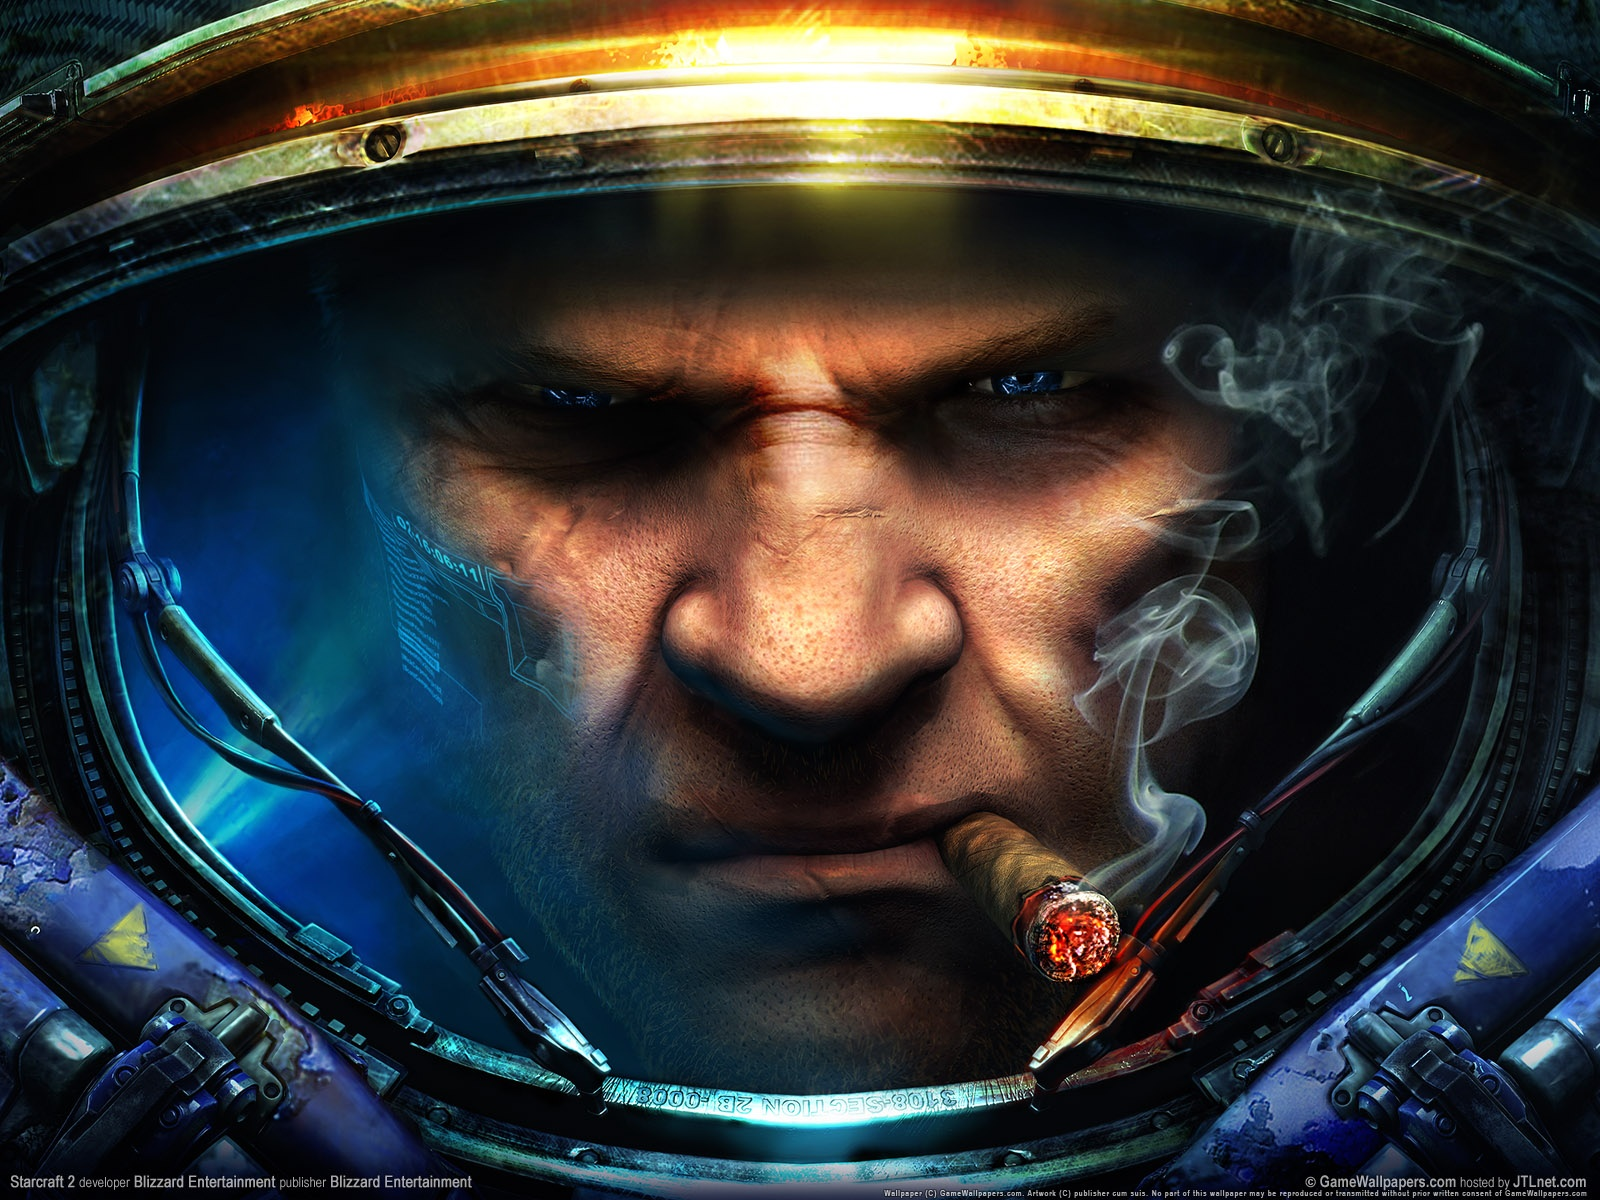 Starcraft 2 1 Wallpapers in jpg format for free download